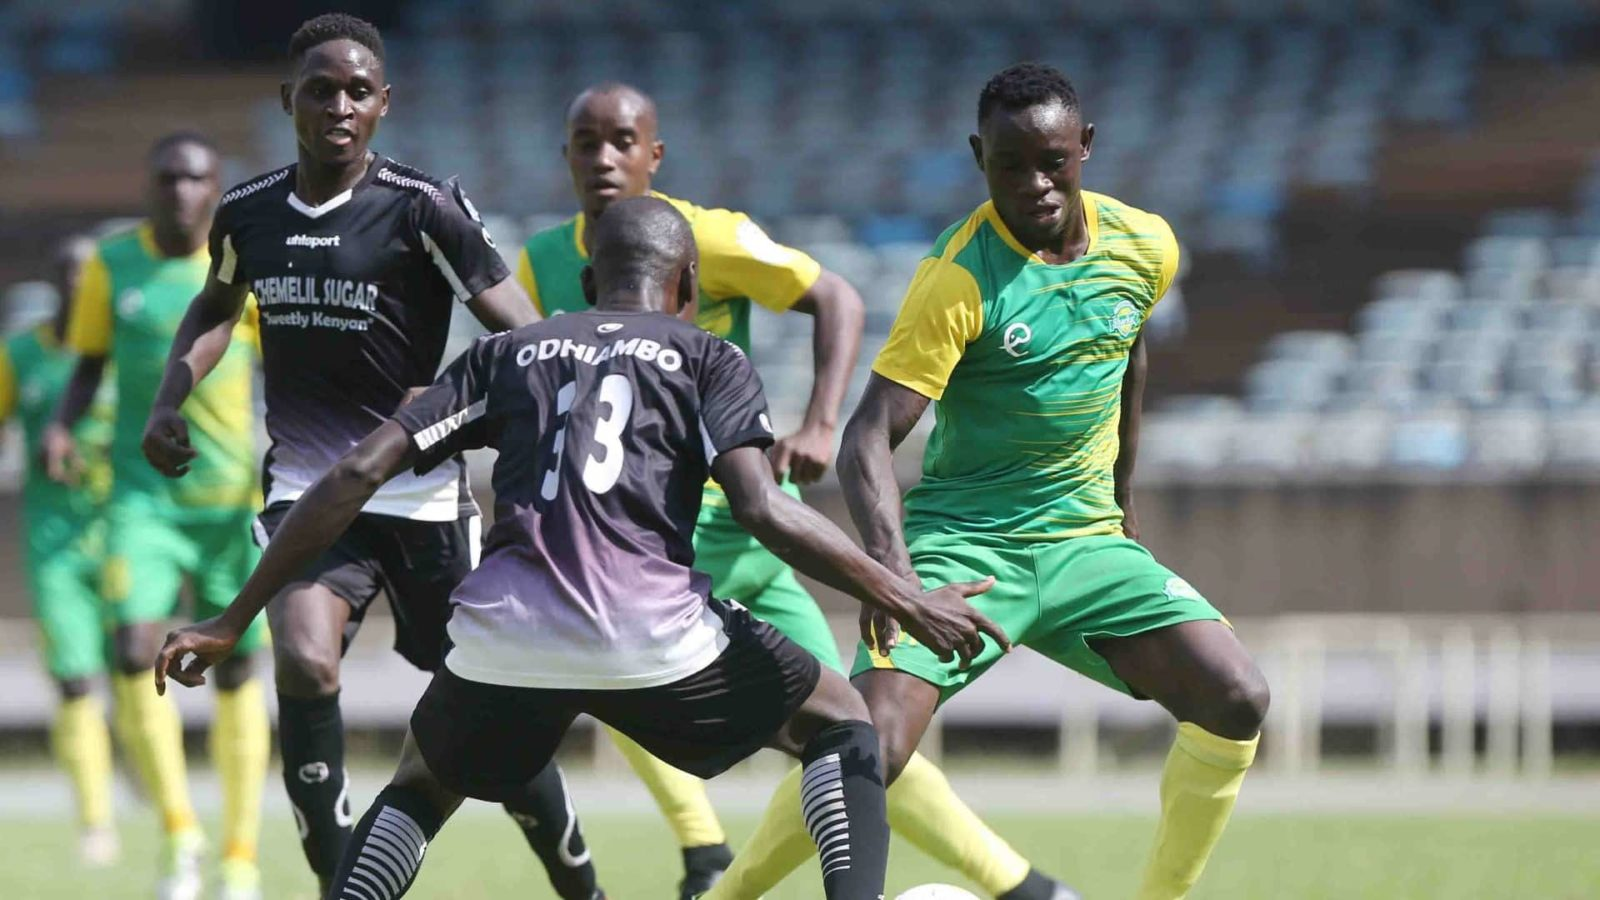 sofapaka-will-find-it-tough-against-chemelil-sugar-–-odera